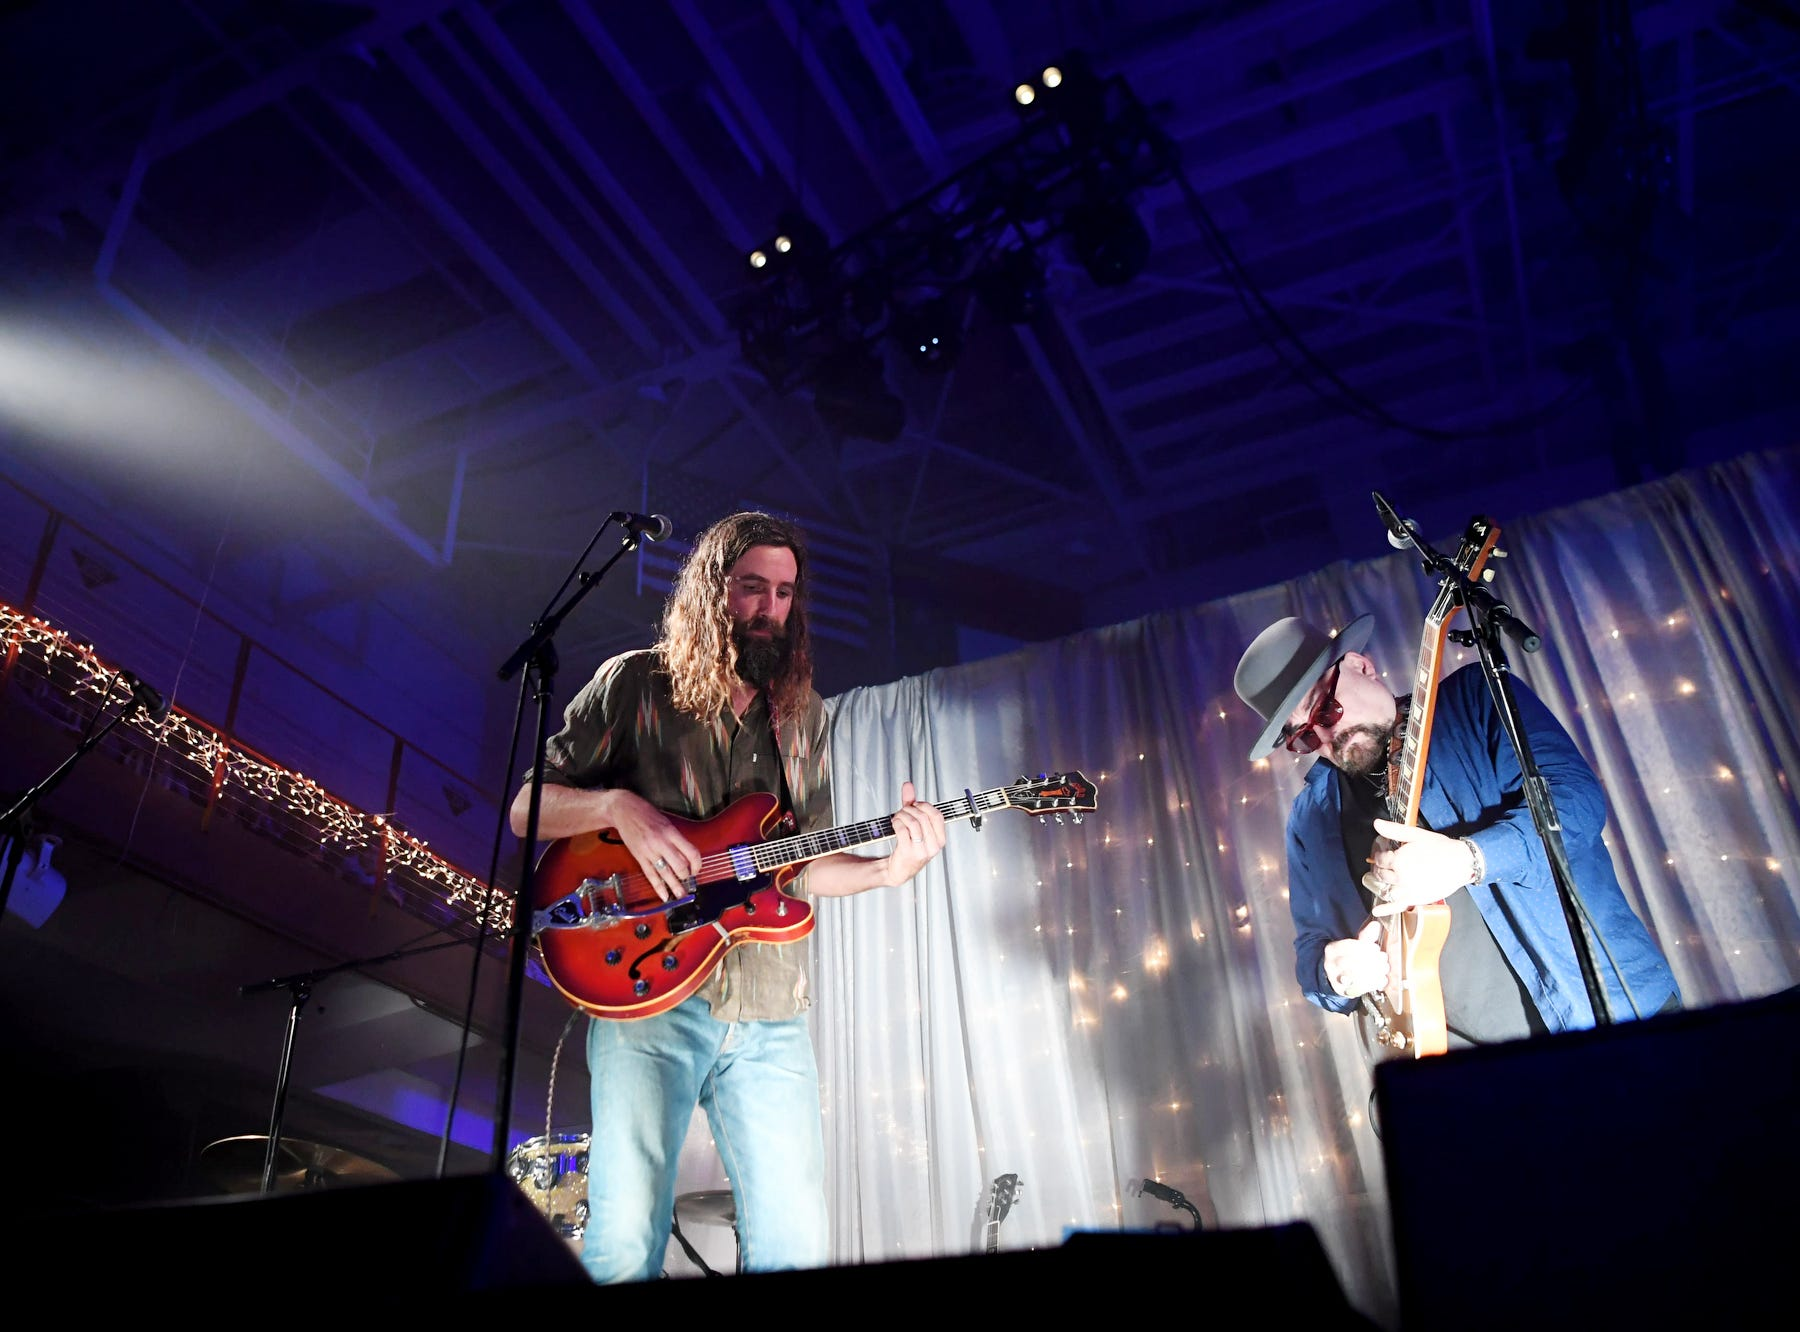 Tyler Ramsey and Jimmy Vivino perform during the second night of Christmas Jam Dec. 8, 2018.